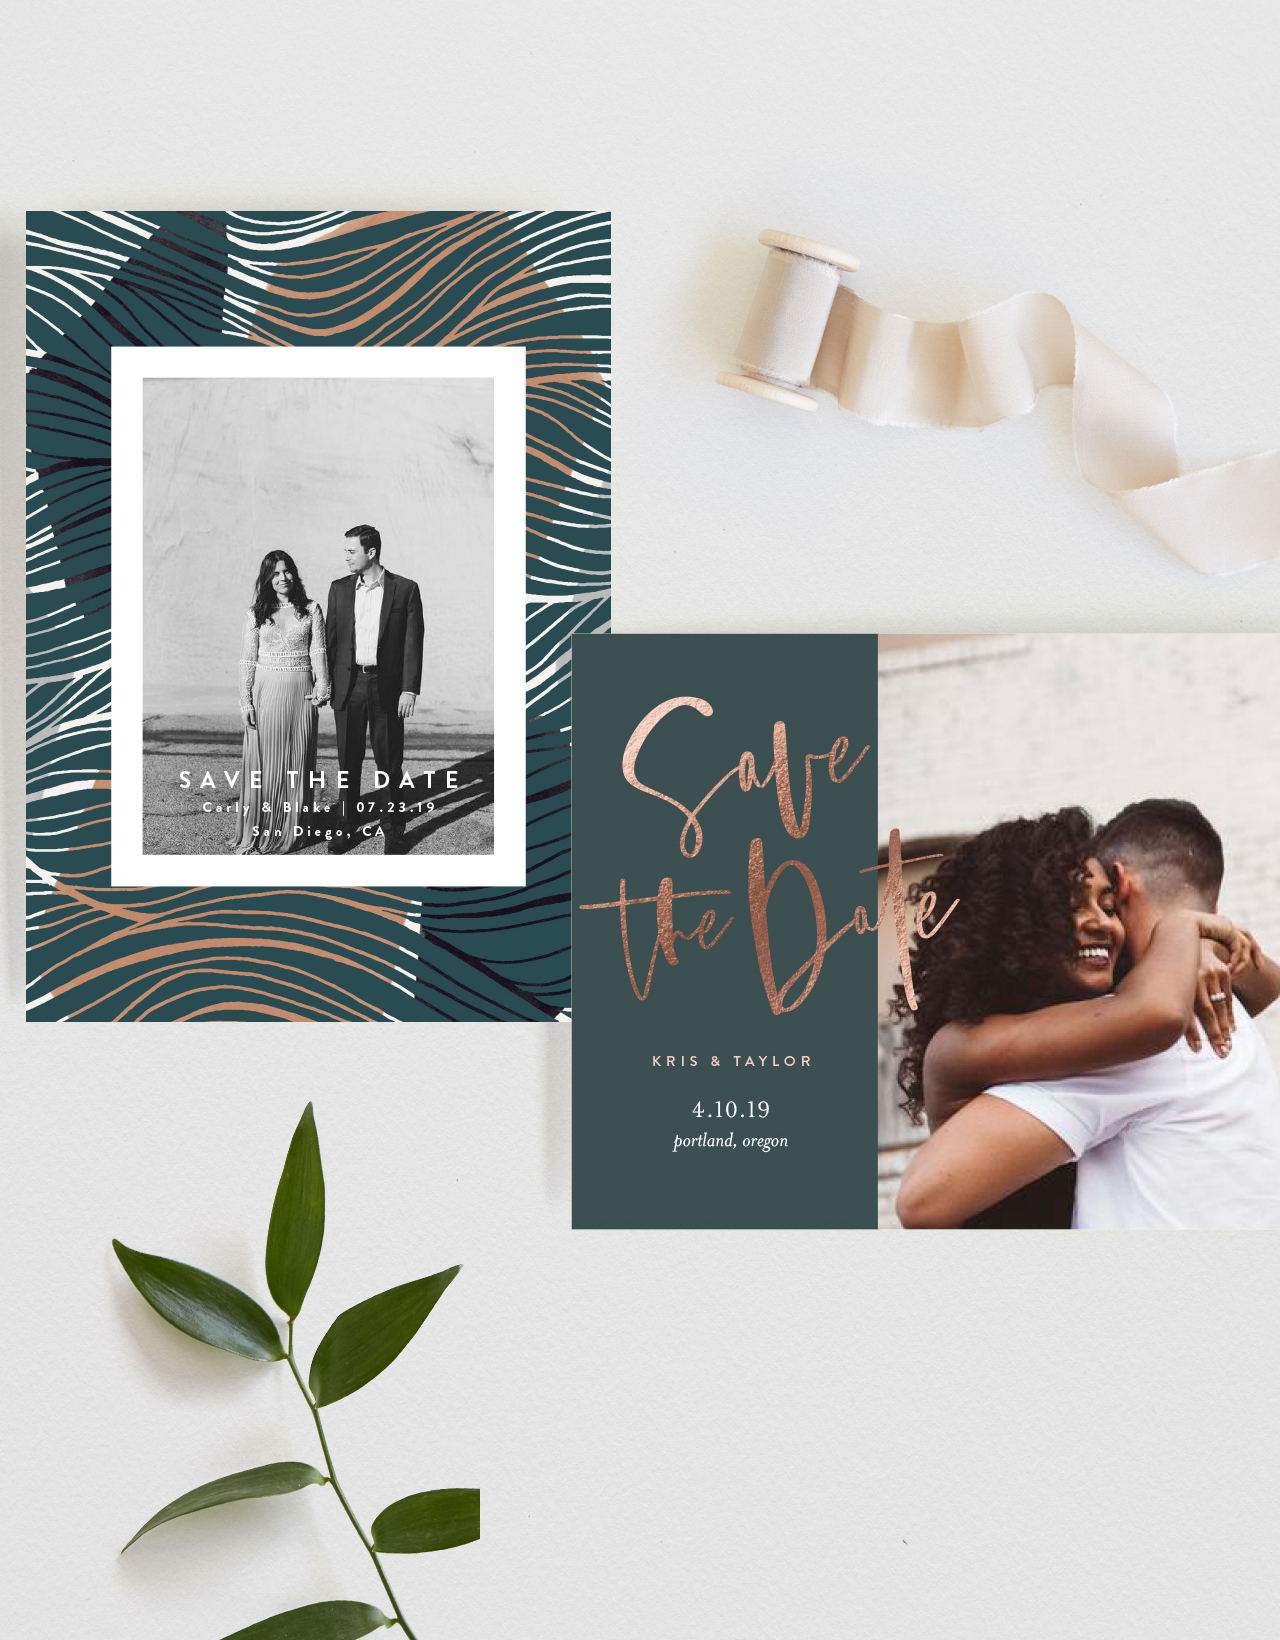 Santa Barbara Wedding Style | new save the date assortment by minted